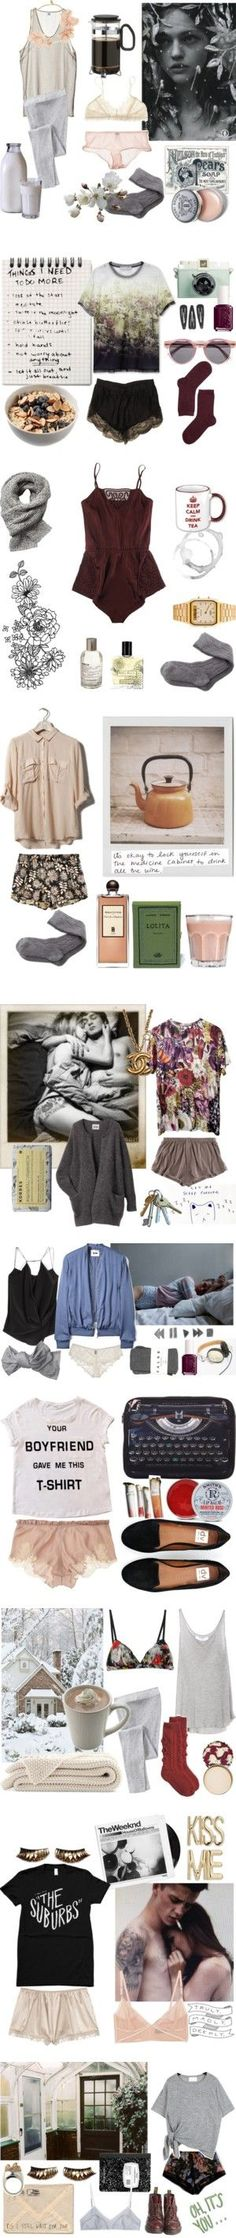 """nice Inspiration look """"Day to night"""" : """"Mornings"""" by kelly-m-o on Polyvore..."""